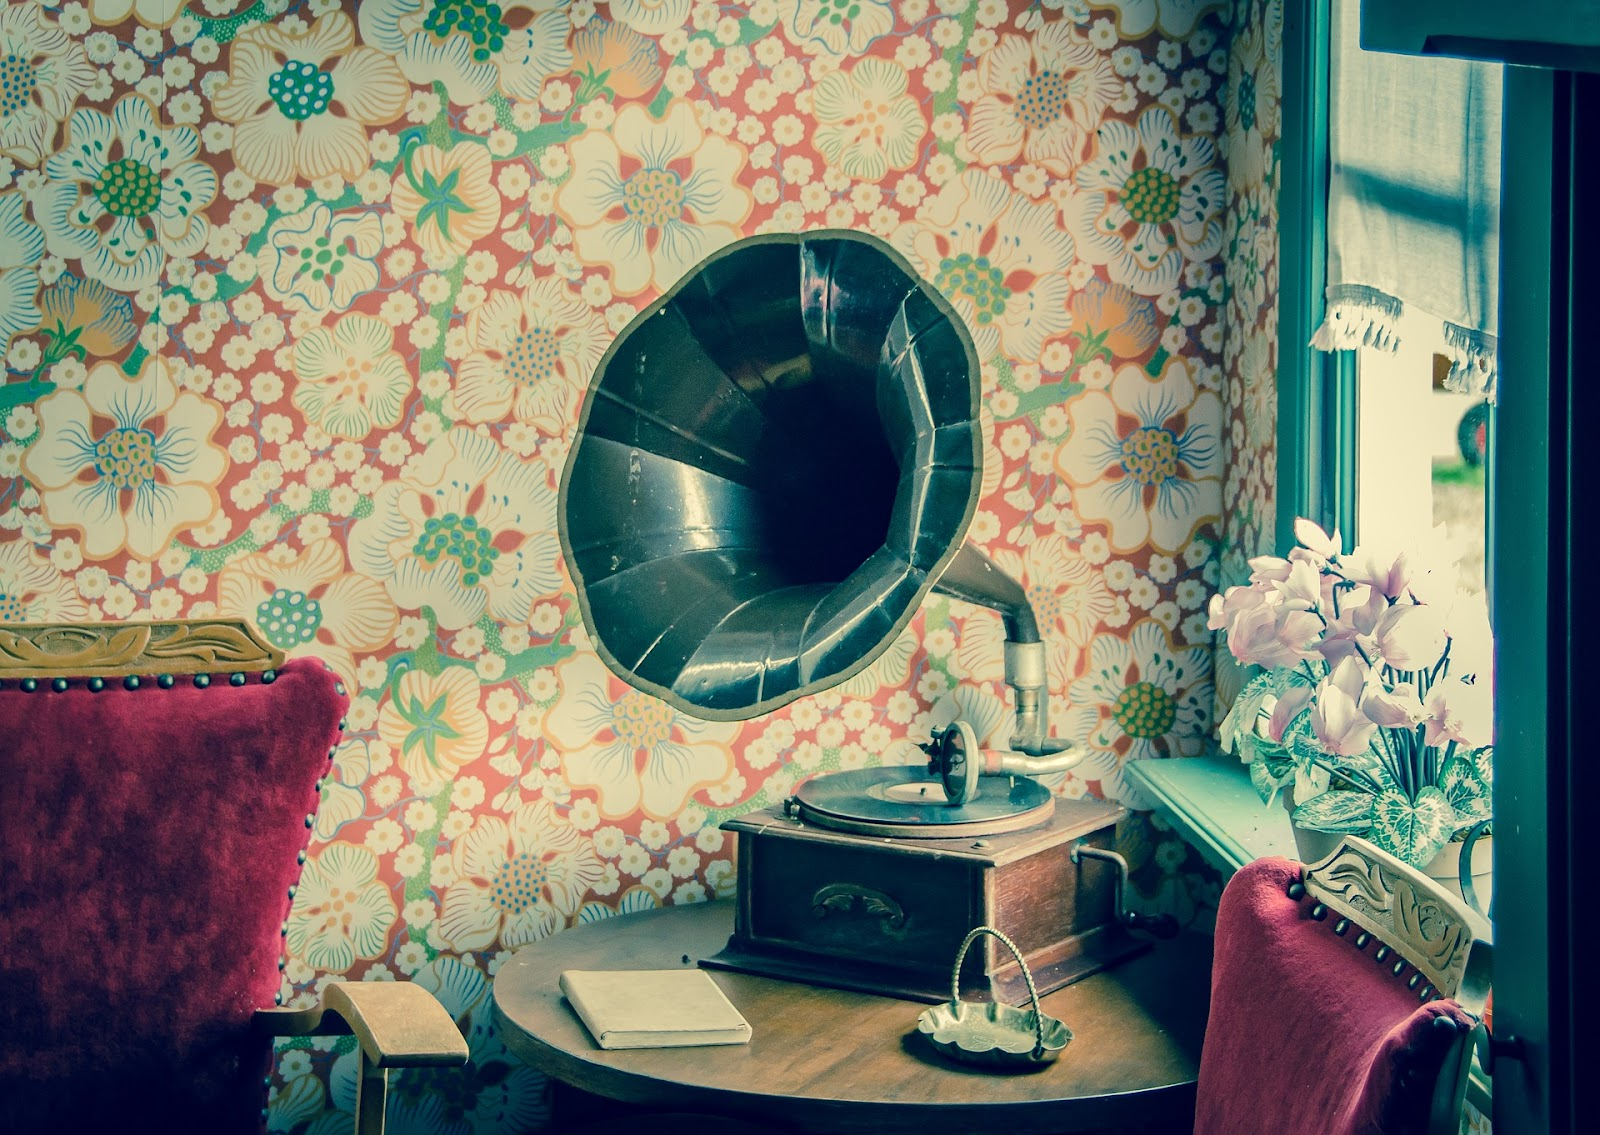 a vinyl record player with a gramophone